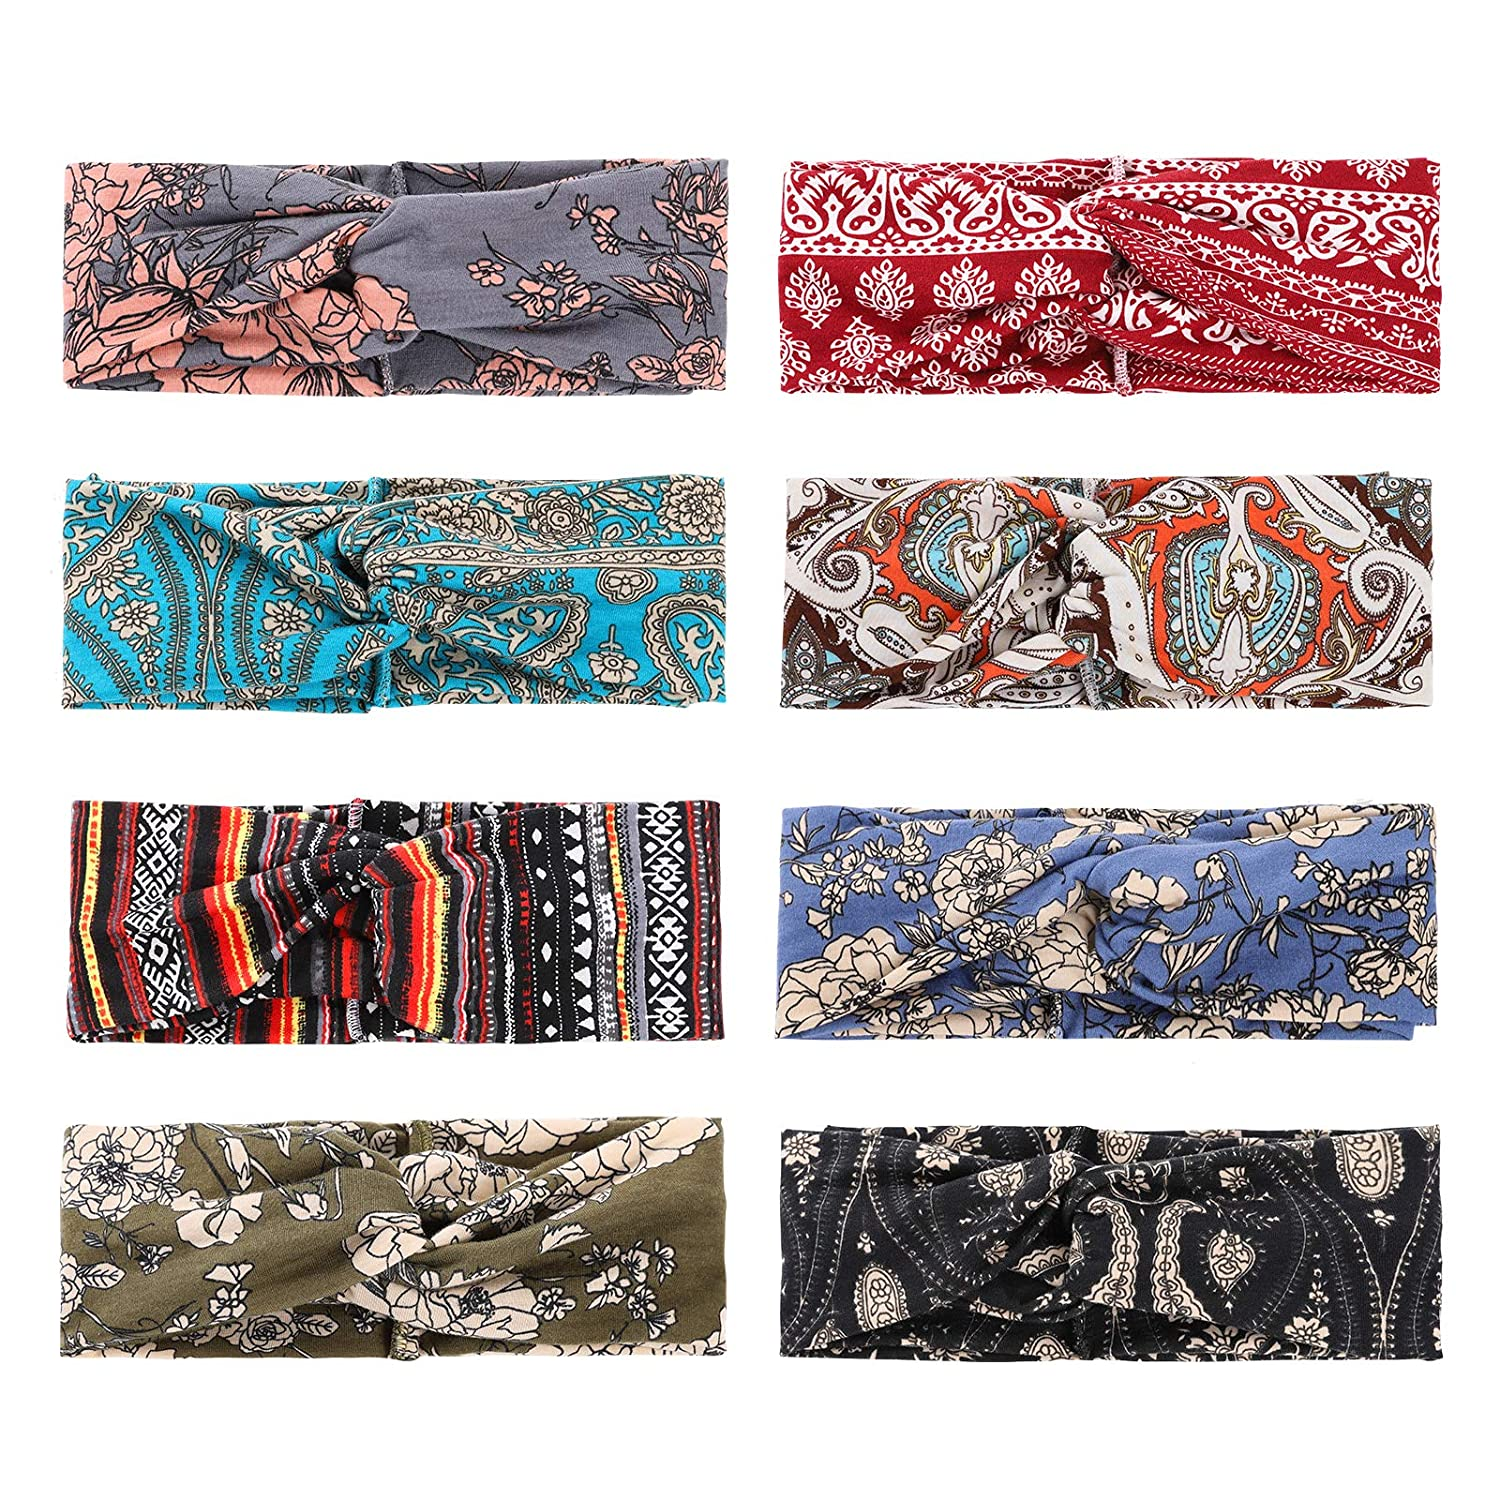 8 Pack Boho Headbands for Women Girls Fashion Hair Bands for Women's Hair Wide Bohemian Knotted Yoga Headband Head Wrap Criss Cross Hair Band Elastic Accessories (Color C)